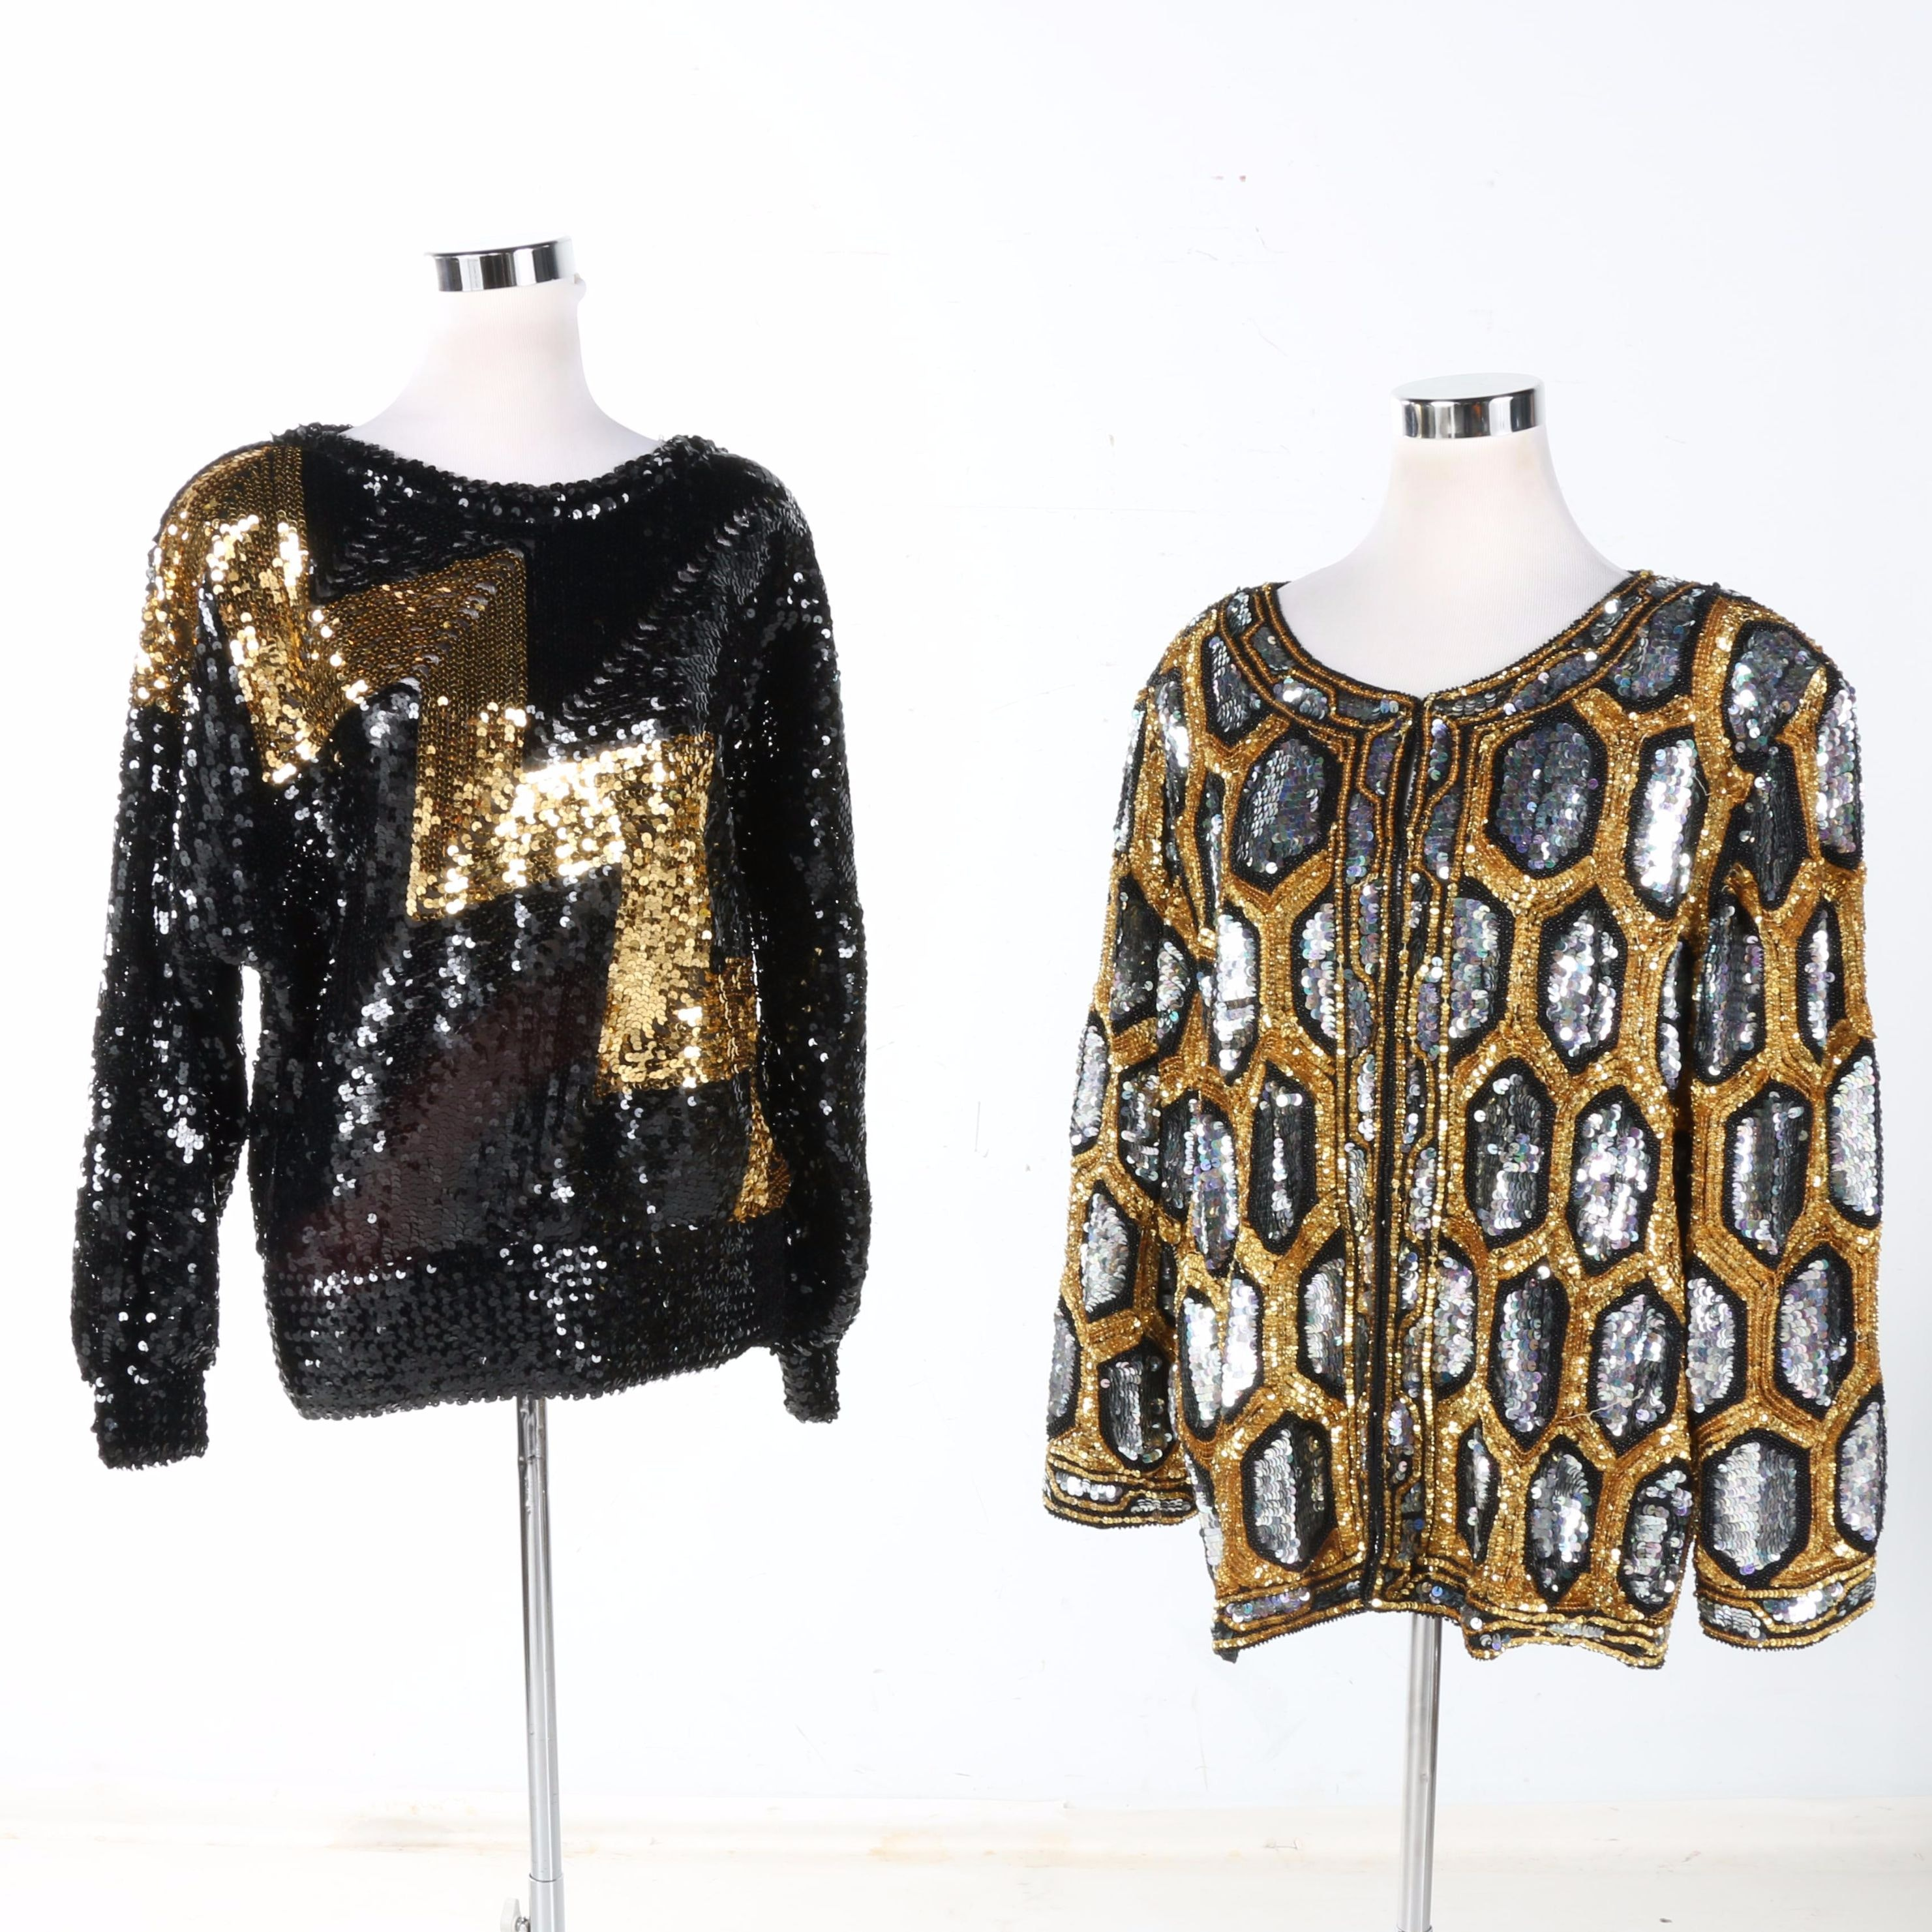 Patterned Sequined Top and Jacket